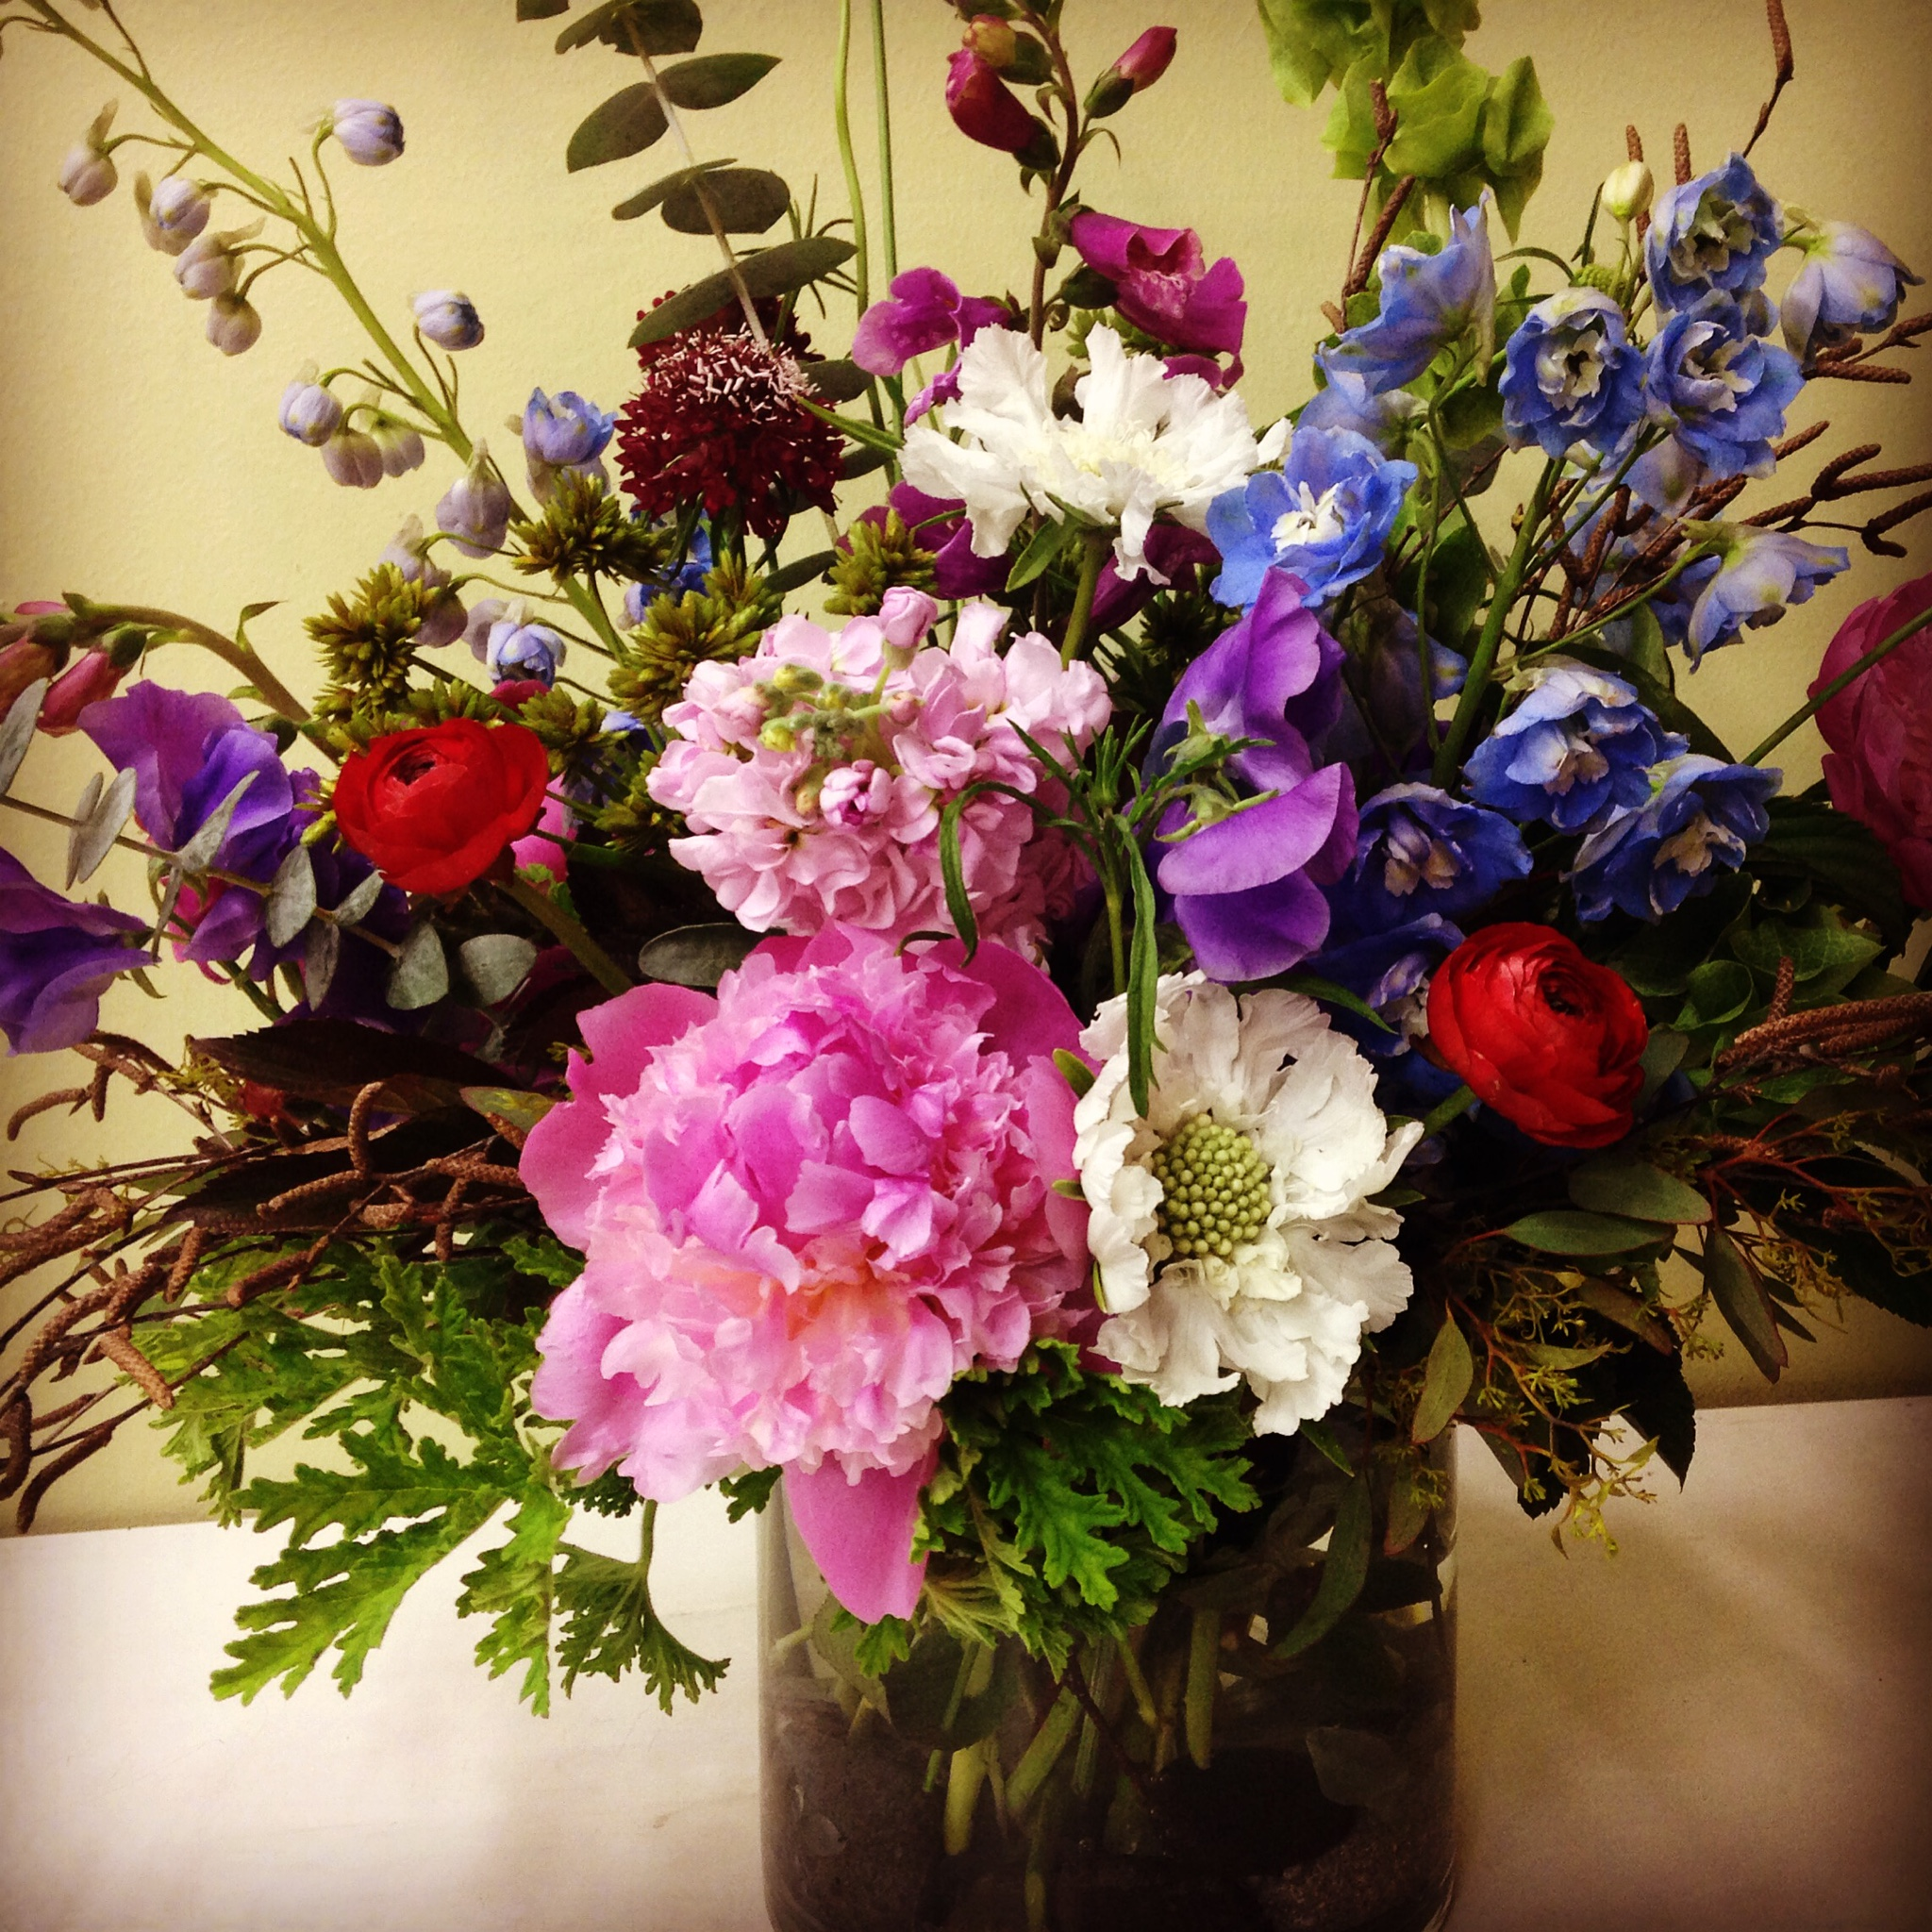 Wild and Colorful with Peonies, Sweet Peas and Scabiosa